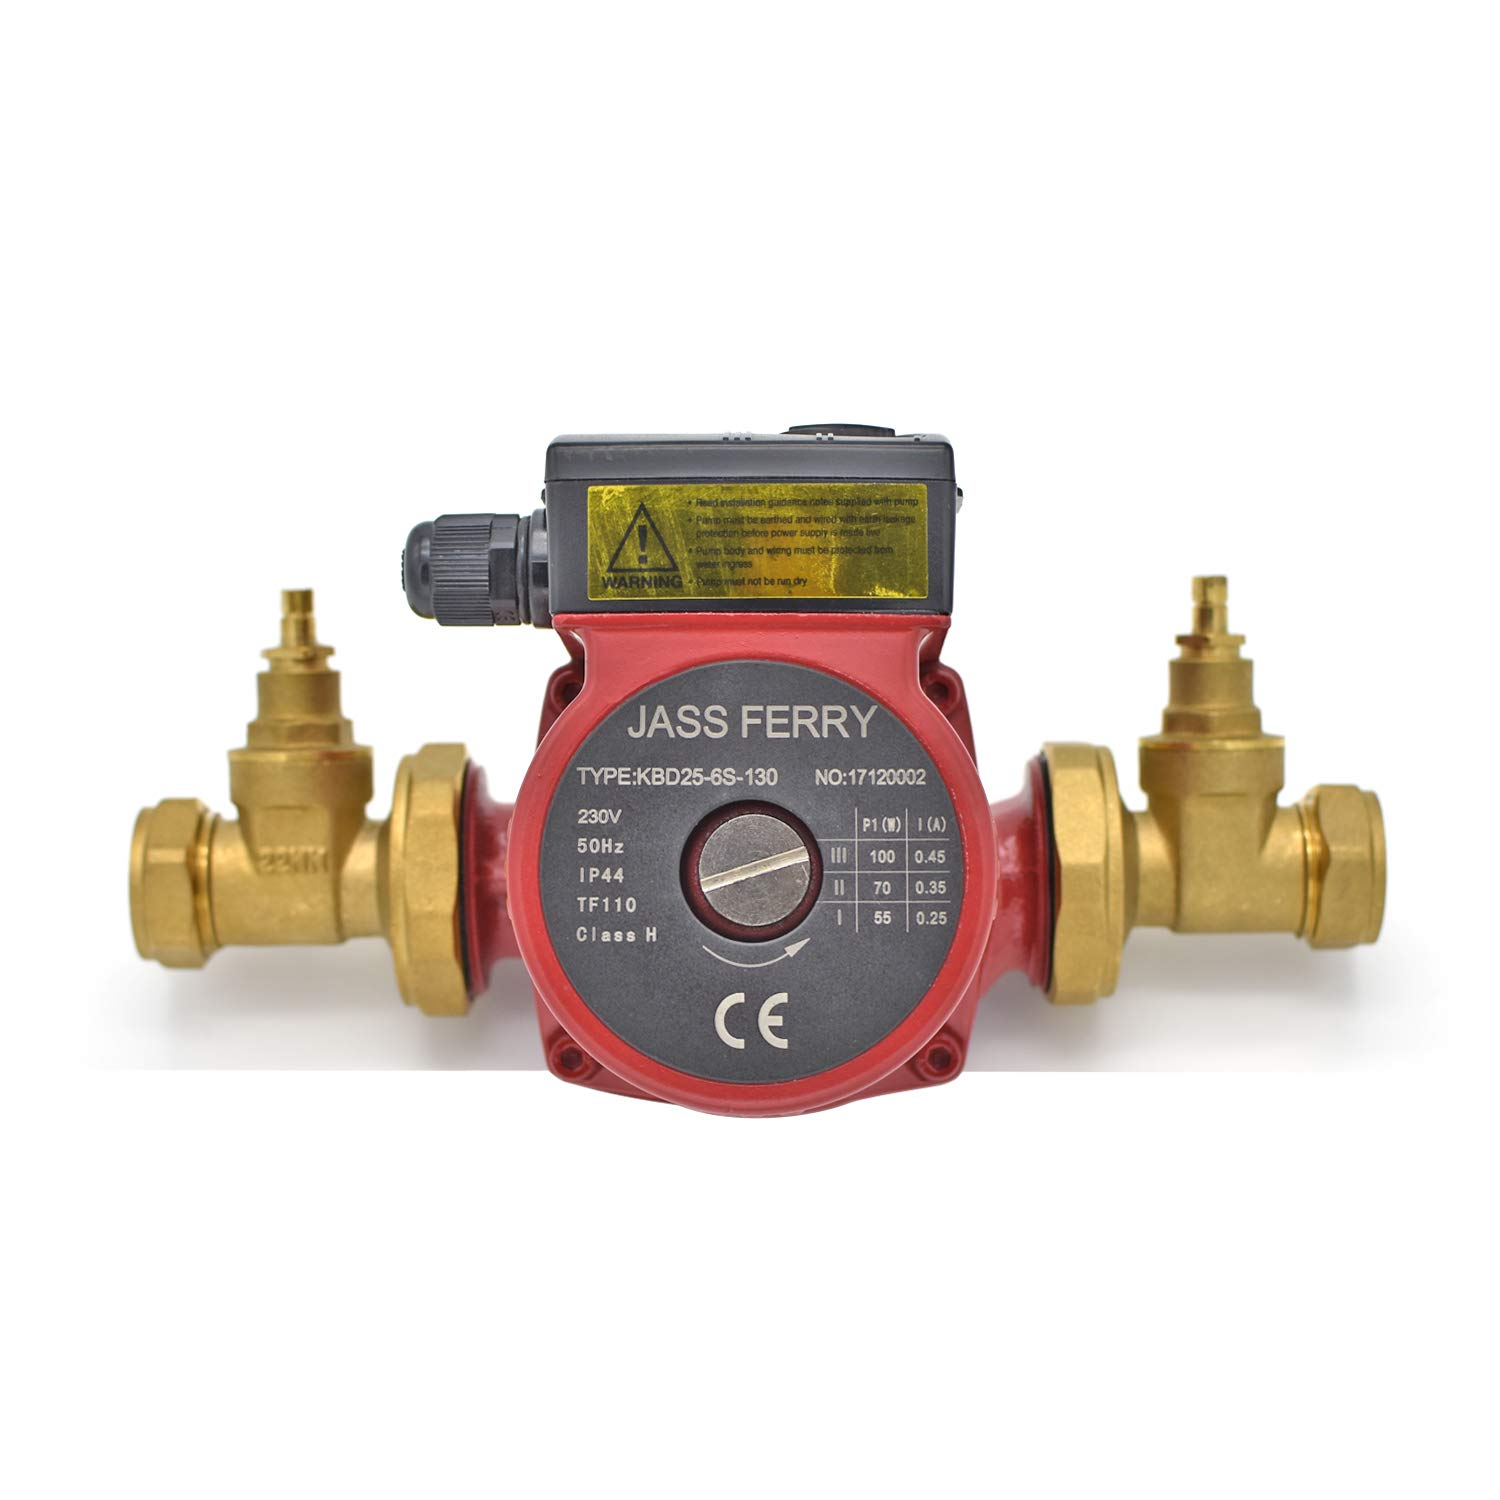 JASS FERRY Central Heating Pumps with 2X Gate Type Pump Valve 22mm x 1.1/2' Hot Water Cooling Circulating Systems Replacement